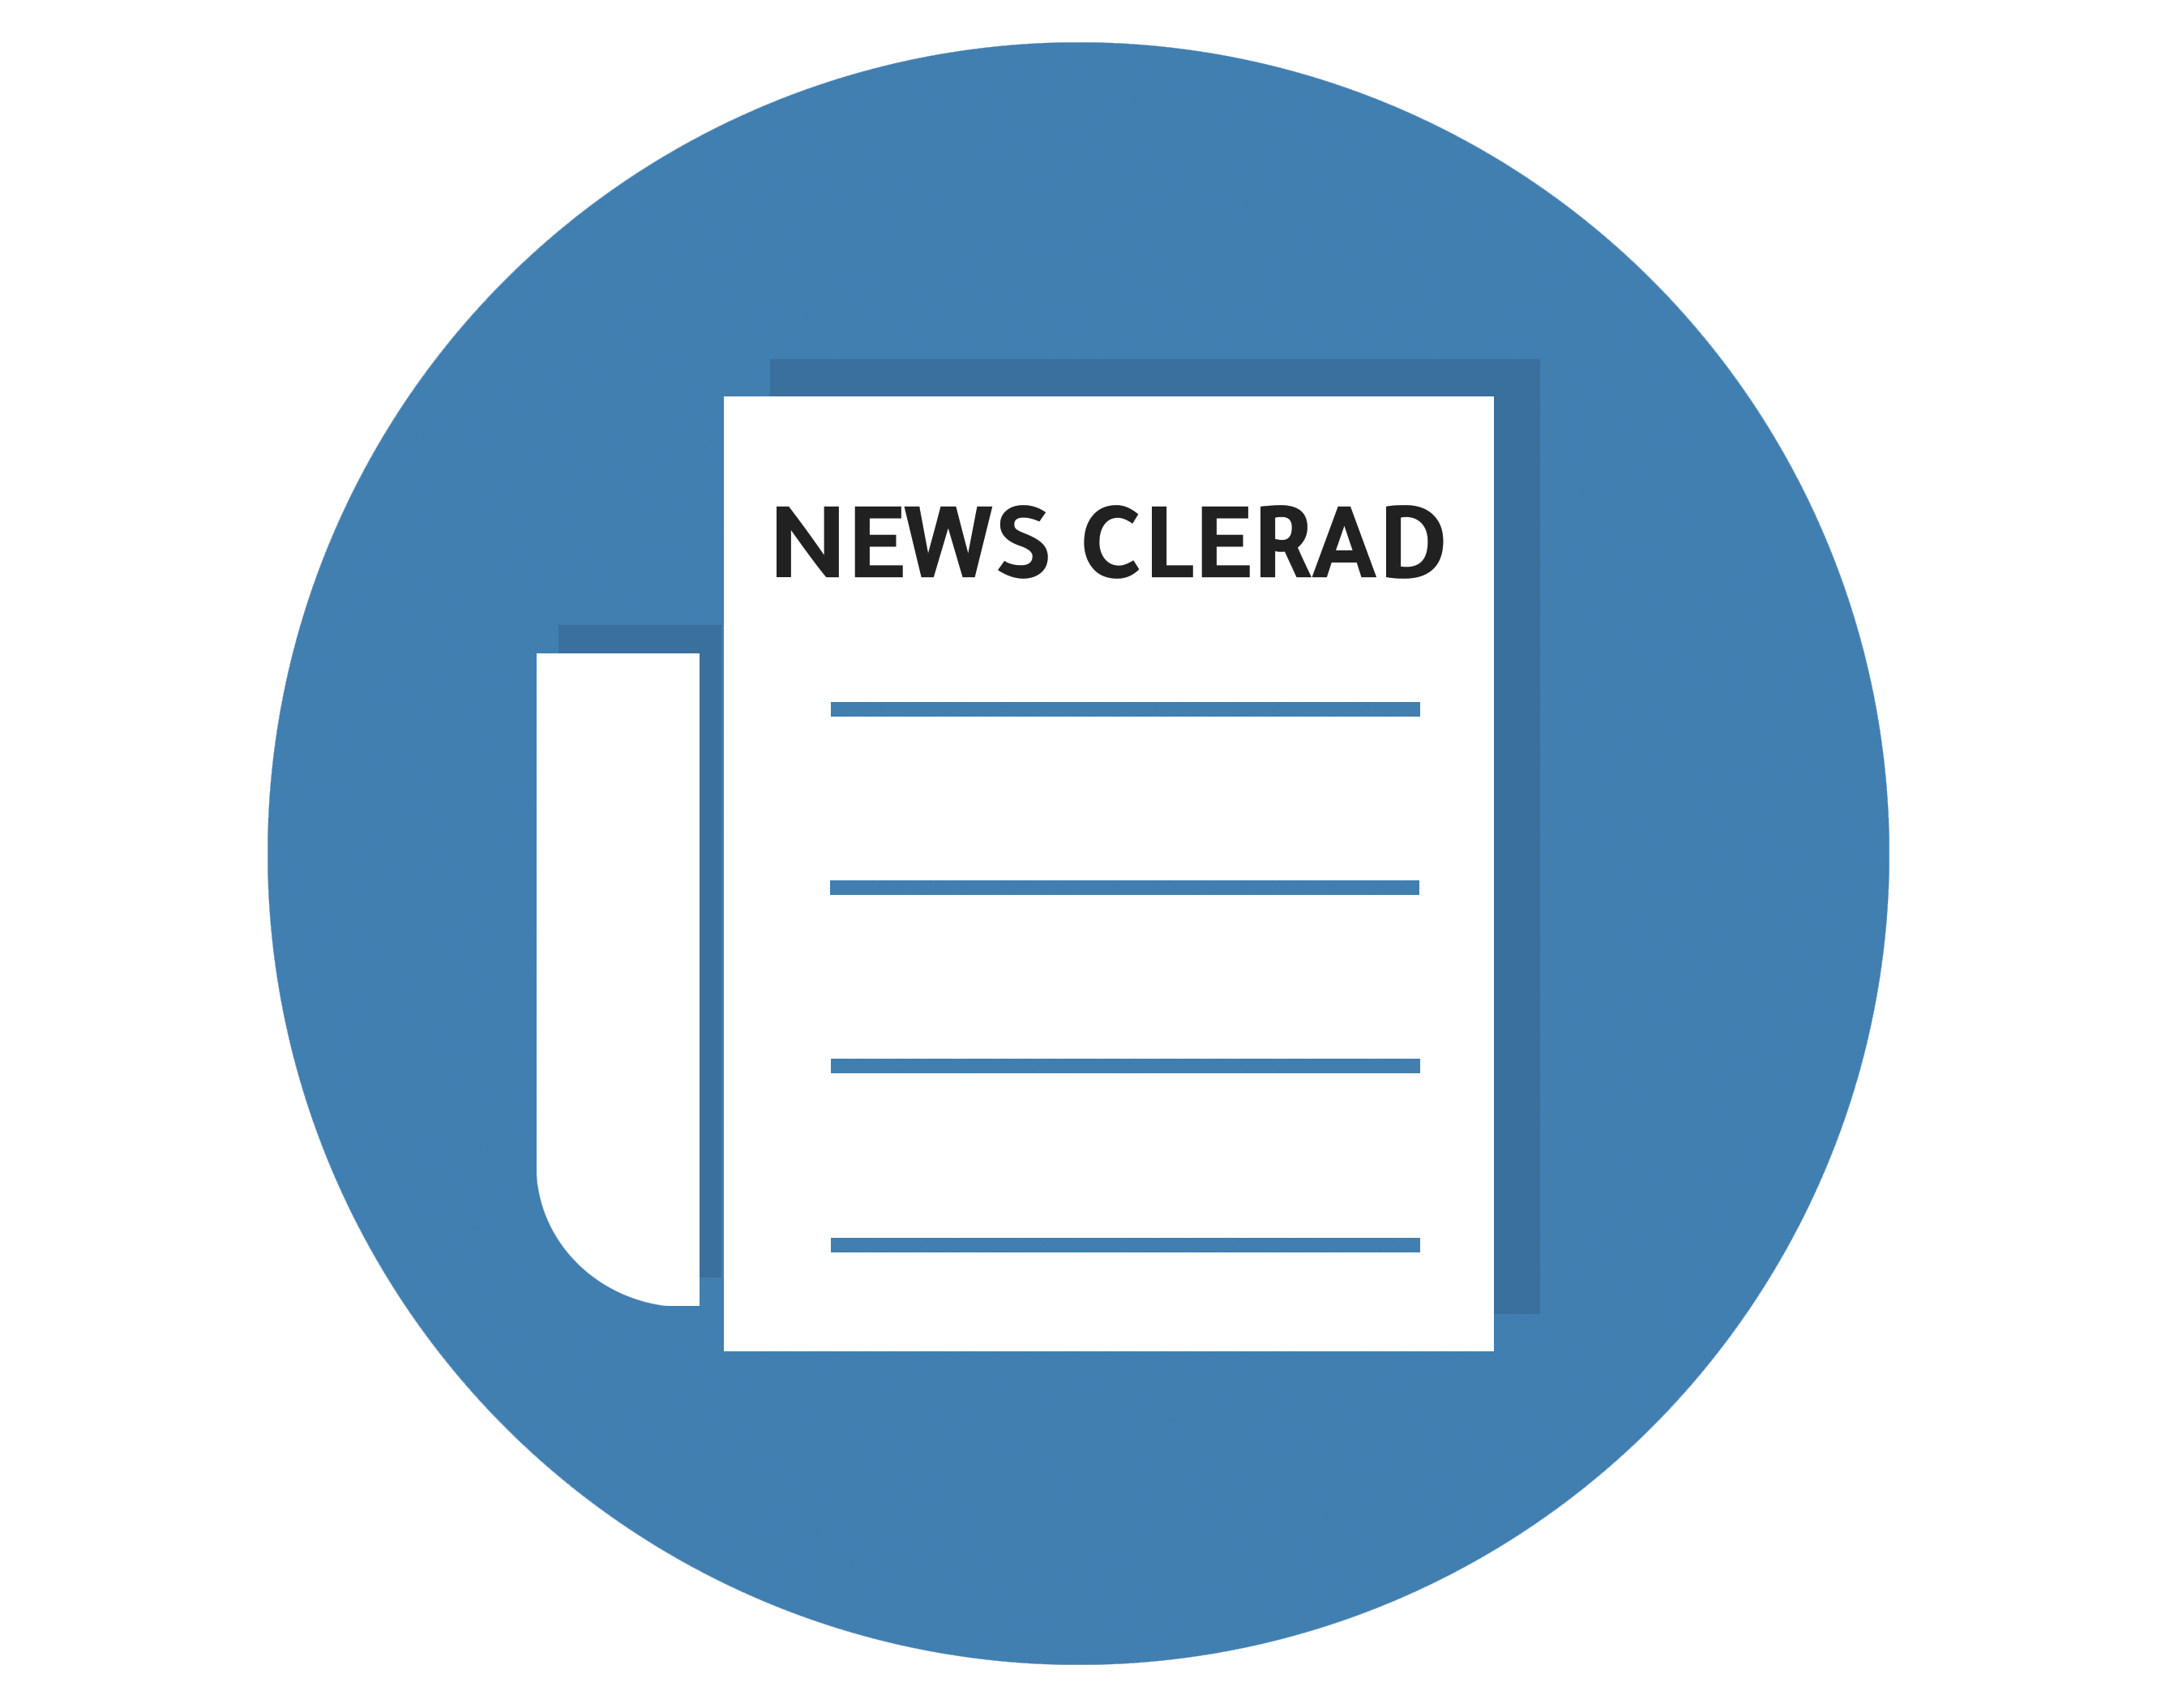 clerad news icon